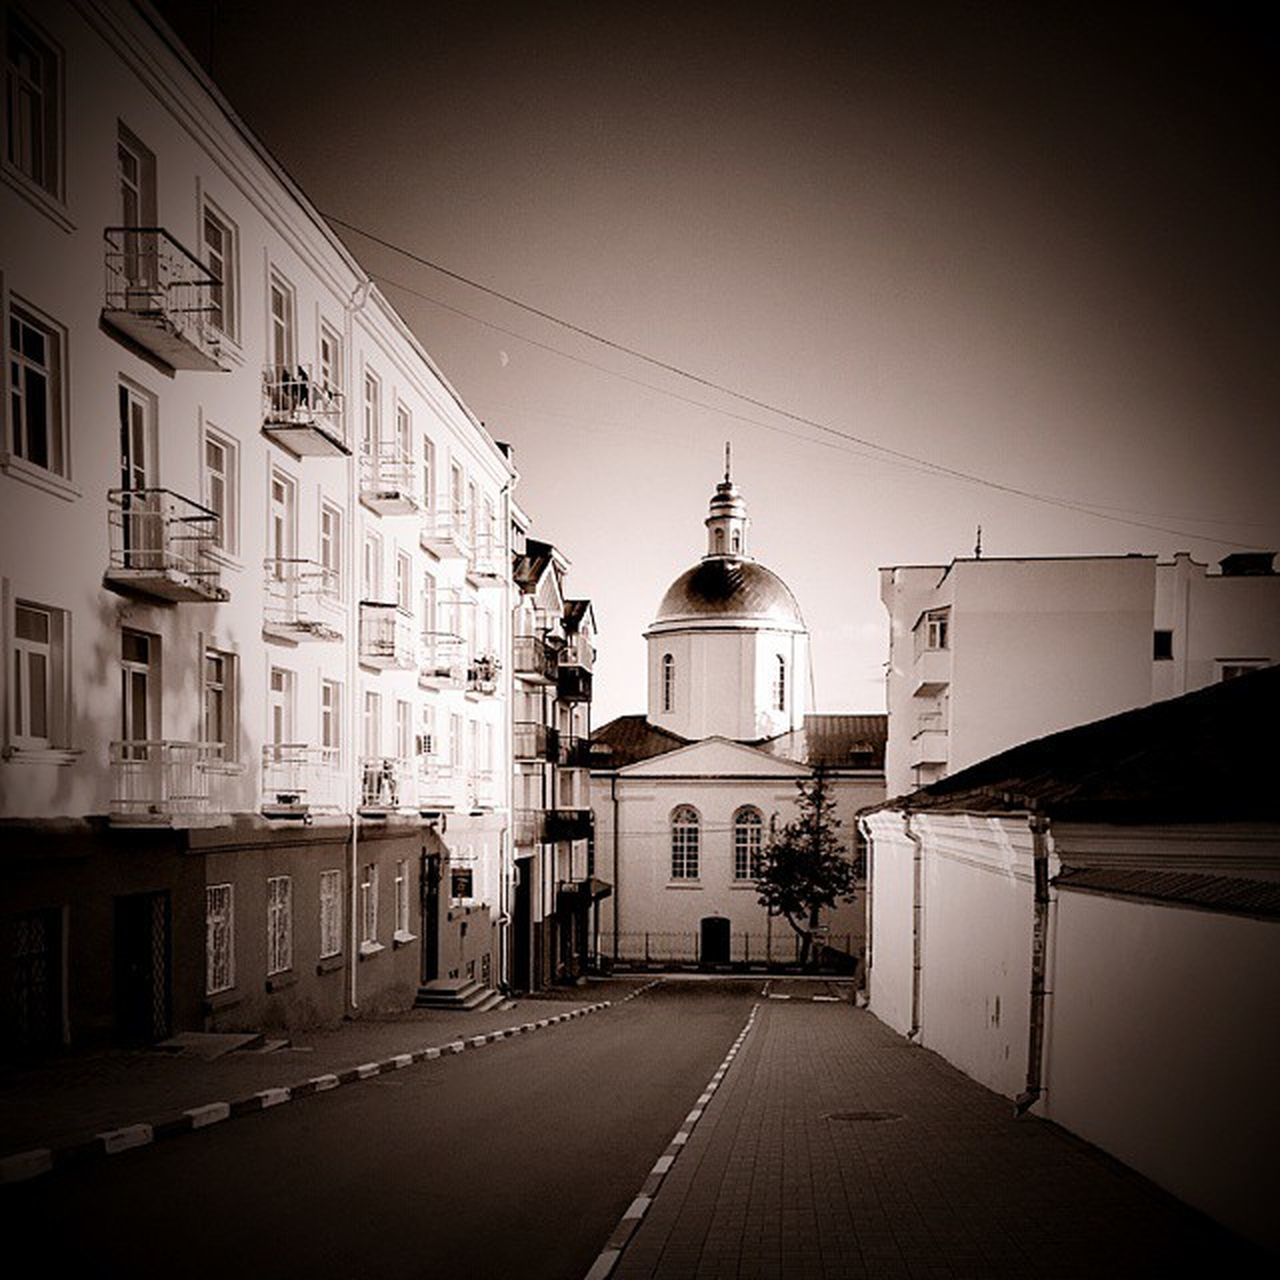 Polotsk Belarusgram Belarusinsta Sepia Streetphotography Walking Around Chirch Thestreetphotographer2016eyeemawards Thearchitect-2016-eyeemawards The 2016 EyeEm Awards